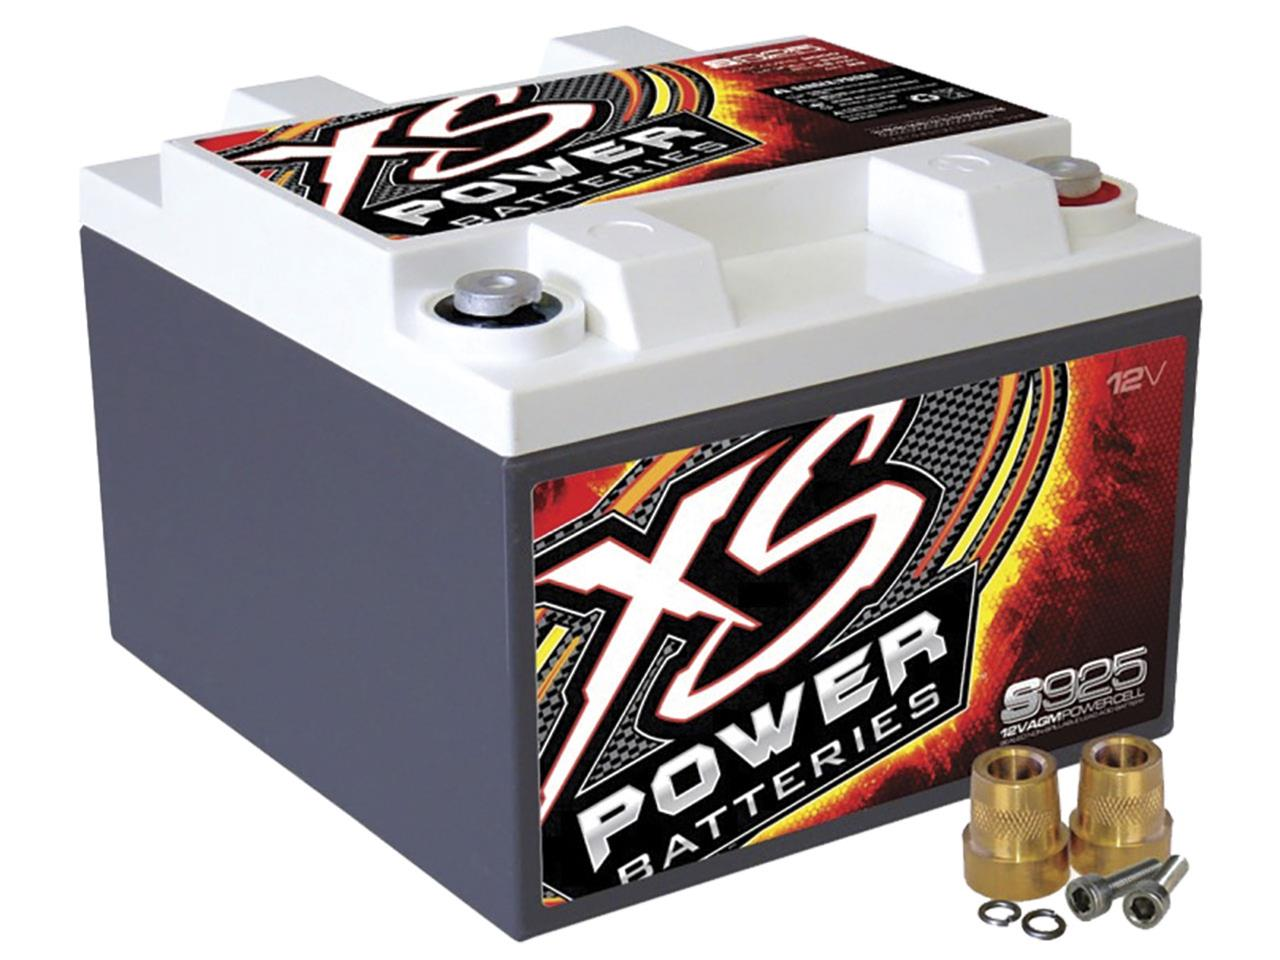 XS 12 Volt AGM Battery - Max Amps: 2000 CA 550